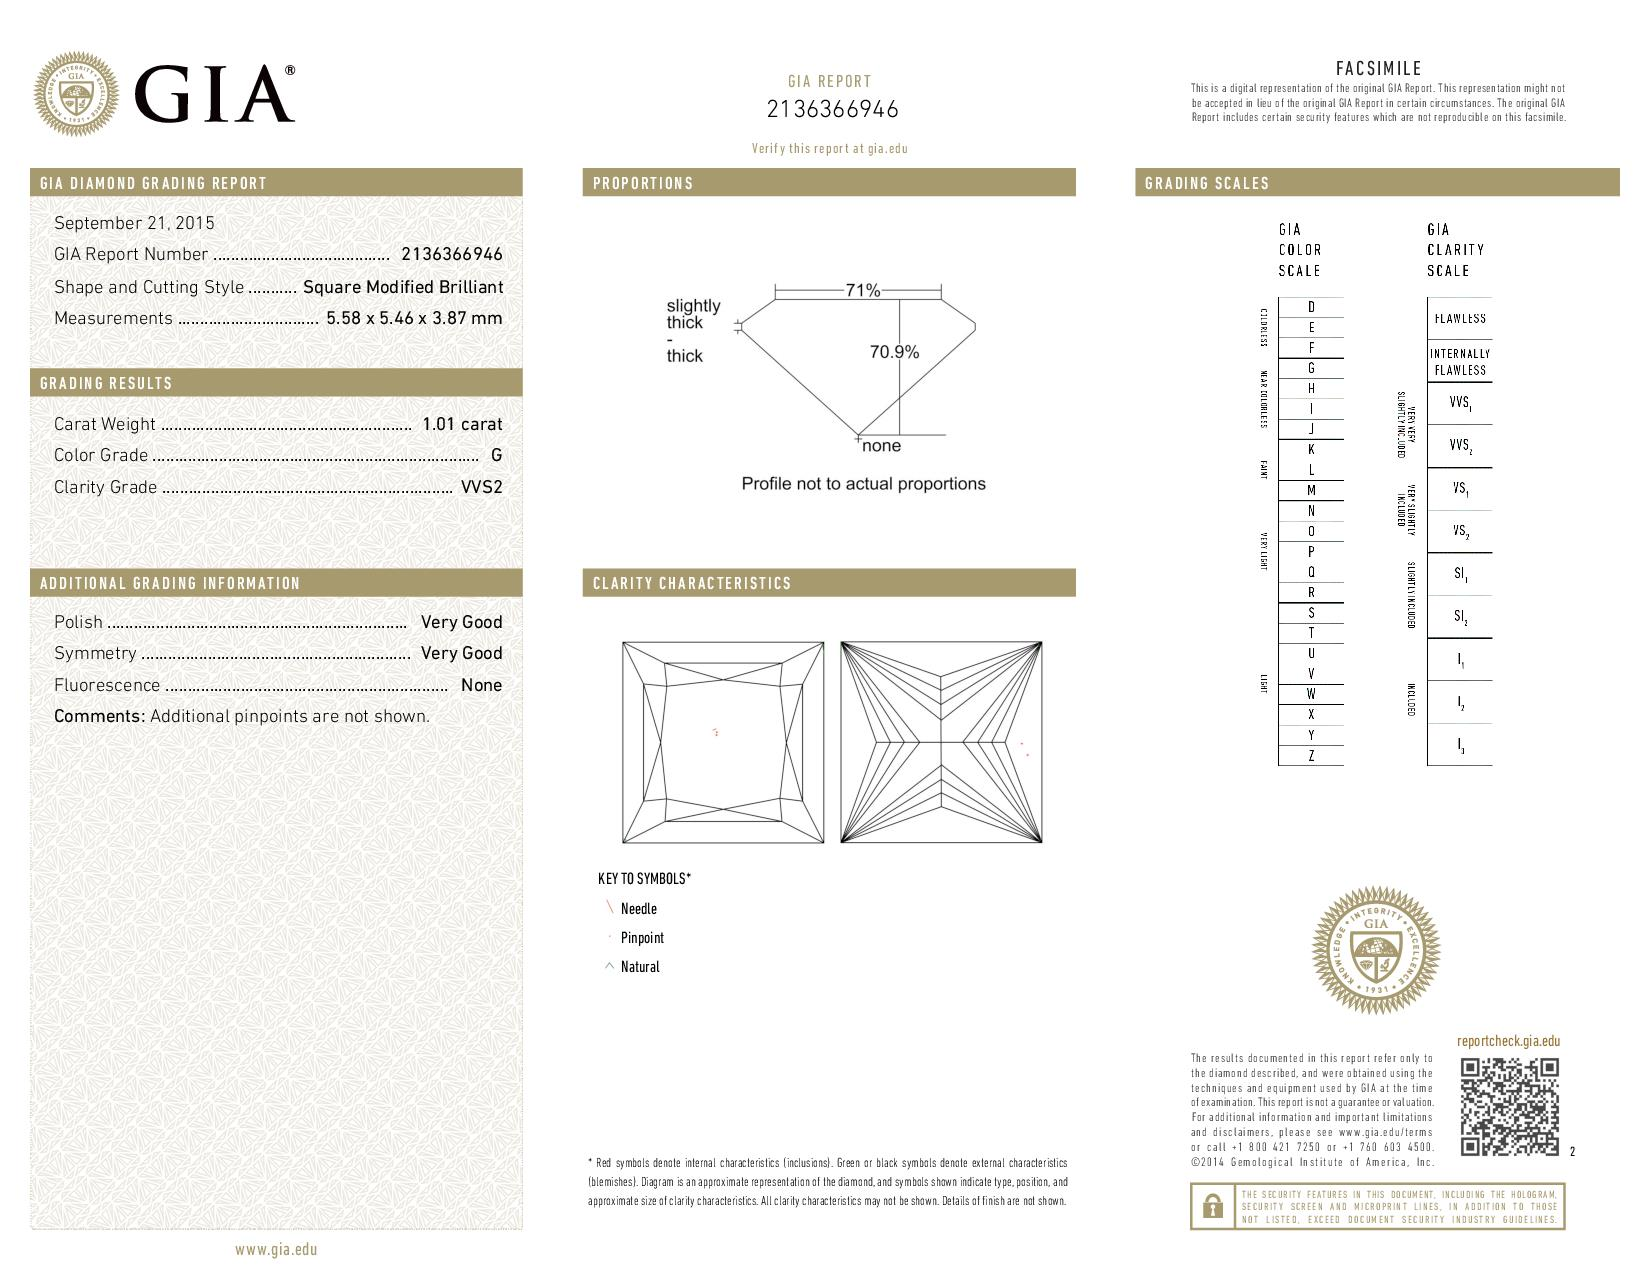 This is a 1.01 carat princess shape, G color, VVS2 clarity natural diamond accompanied by a GIA grading report.